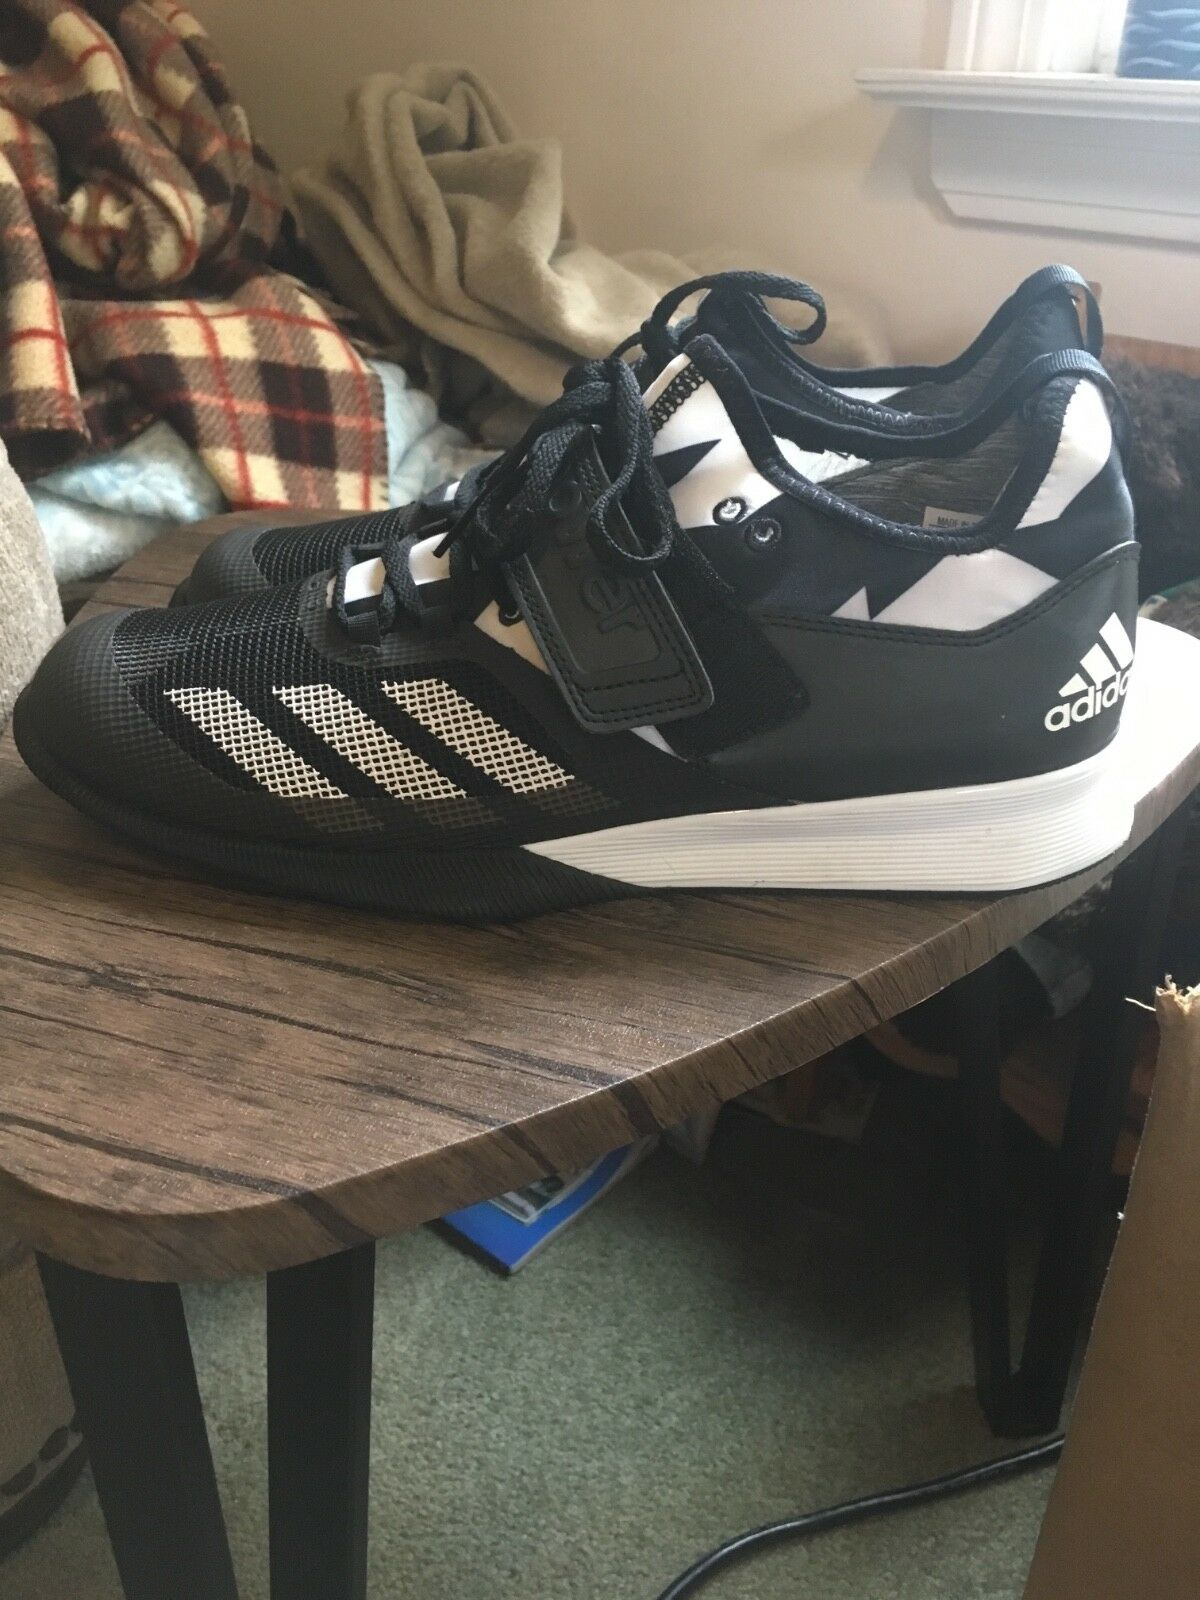 adidas crazy power power crazy men's size 10.5 Black/White 9966dd